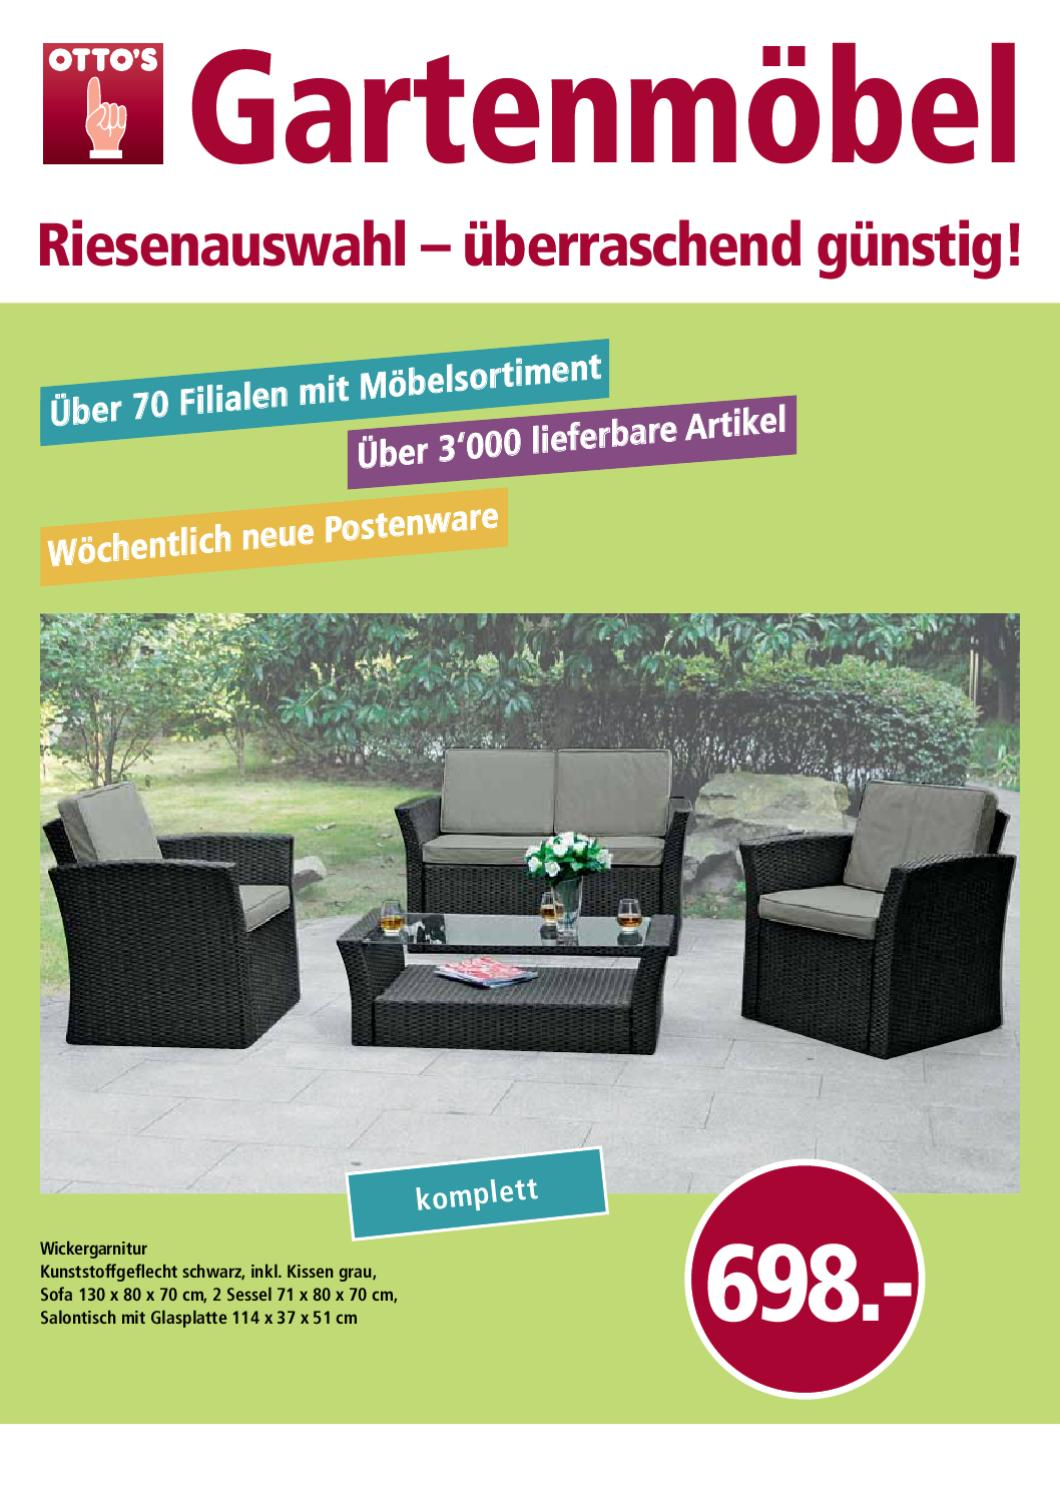 gartenm bel bei otto s by otto 39 s ag issuu. Black Bedroom Furniture Sets. Home Design Ideas